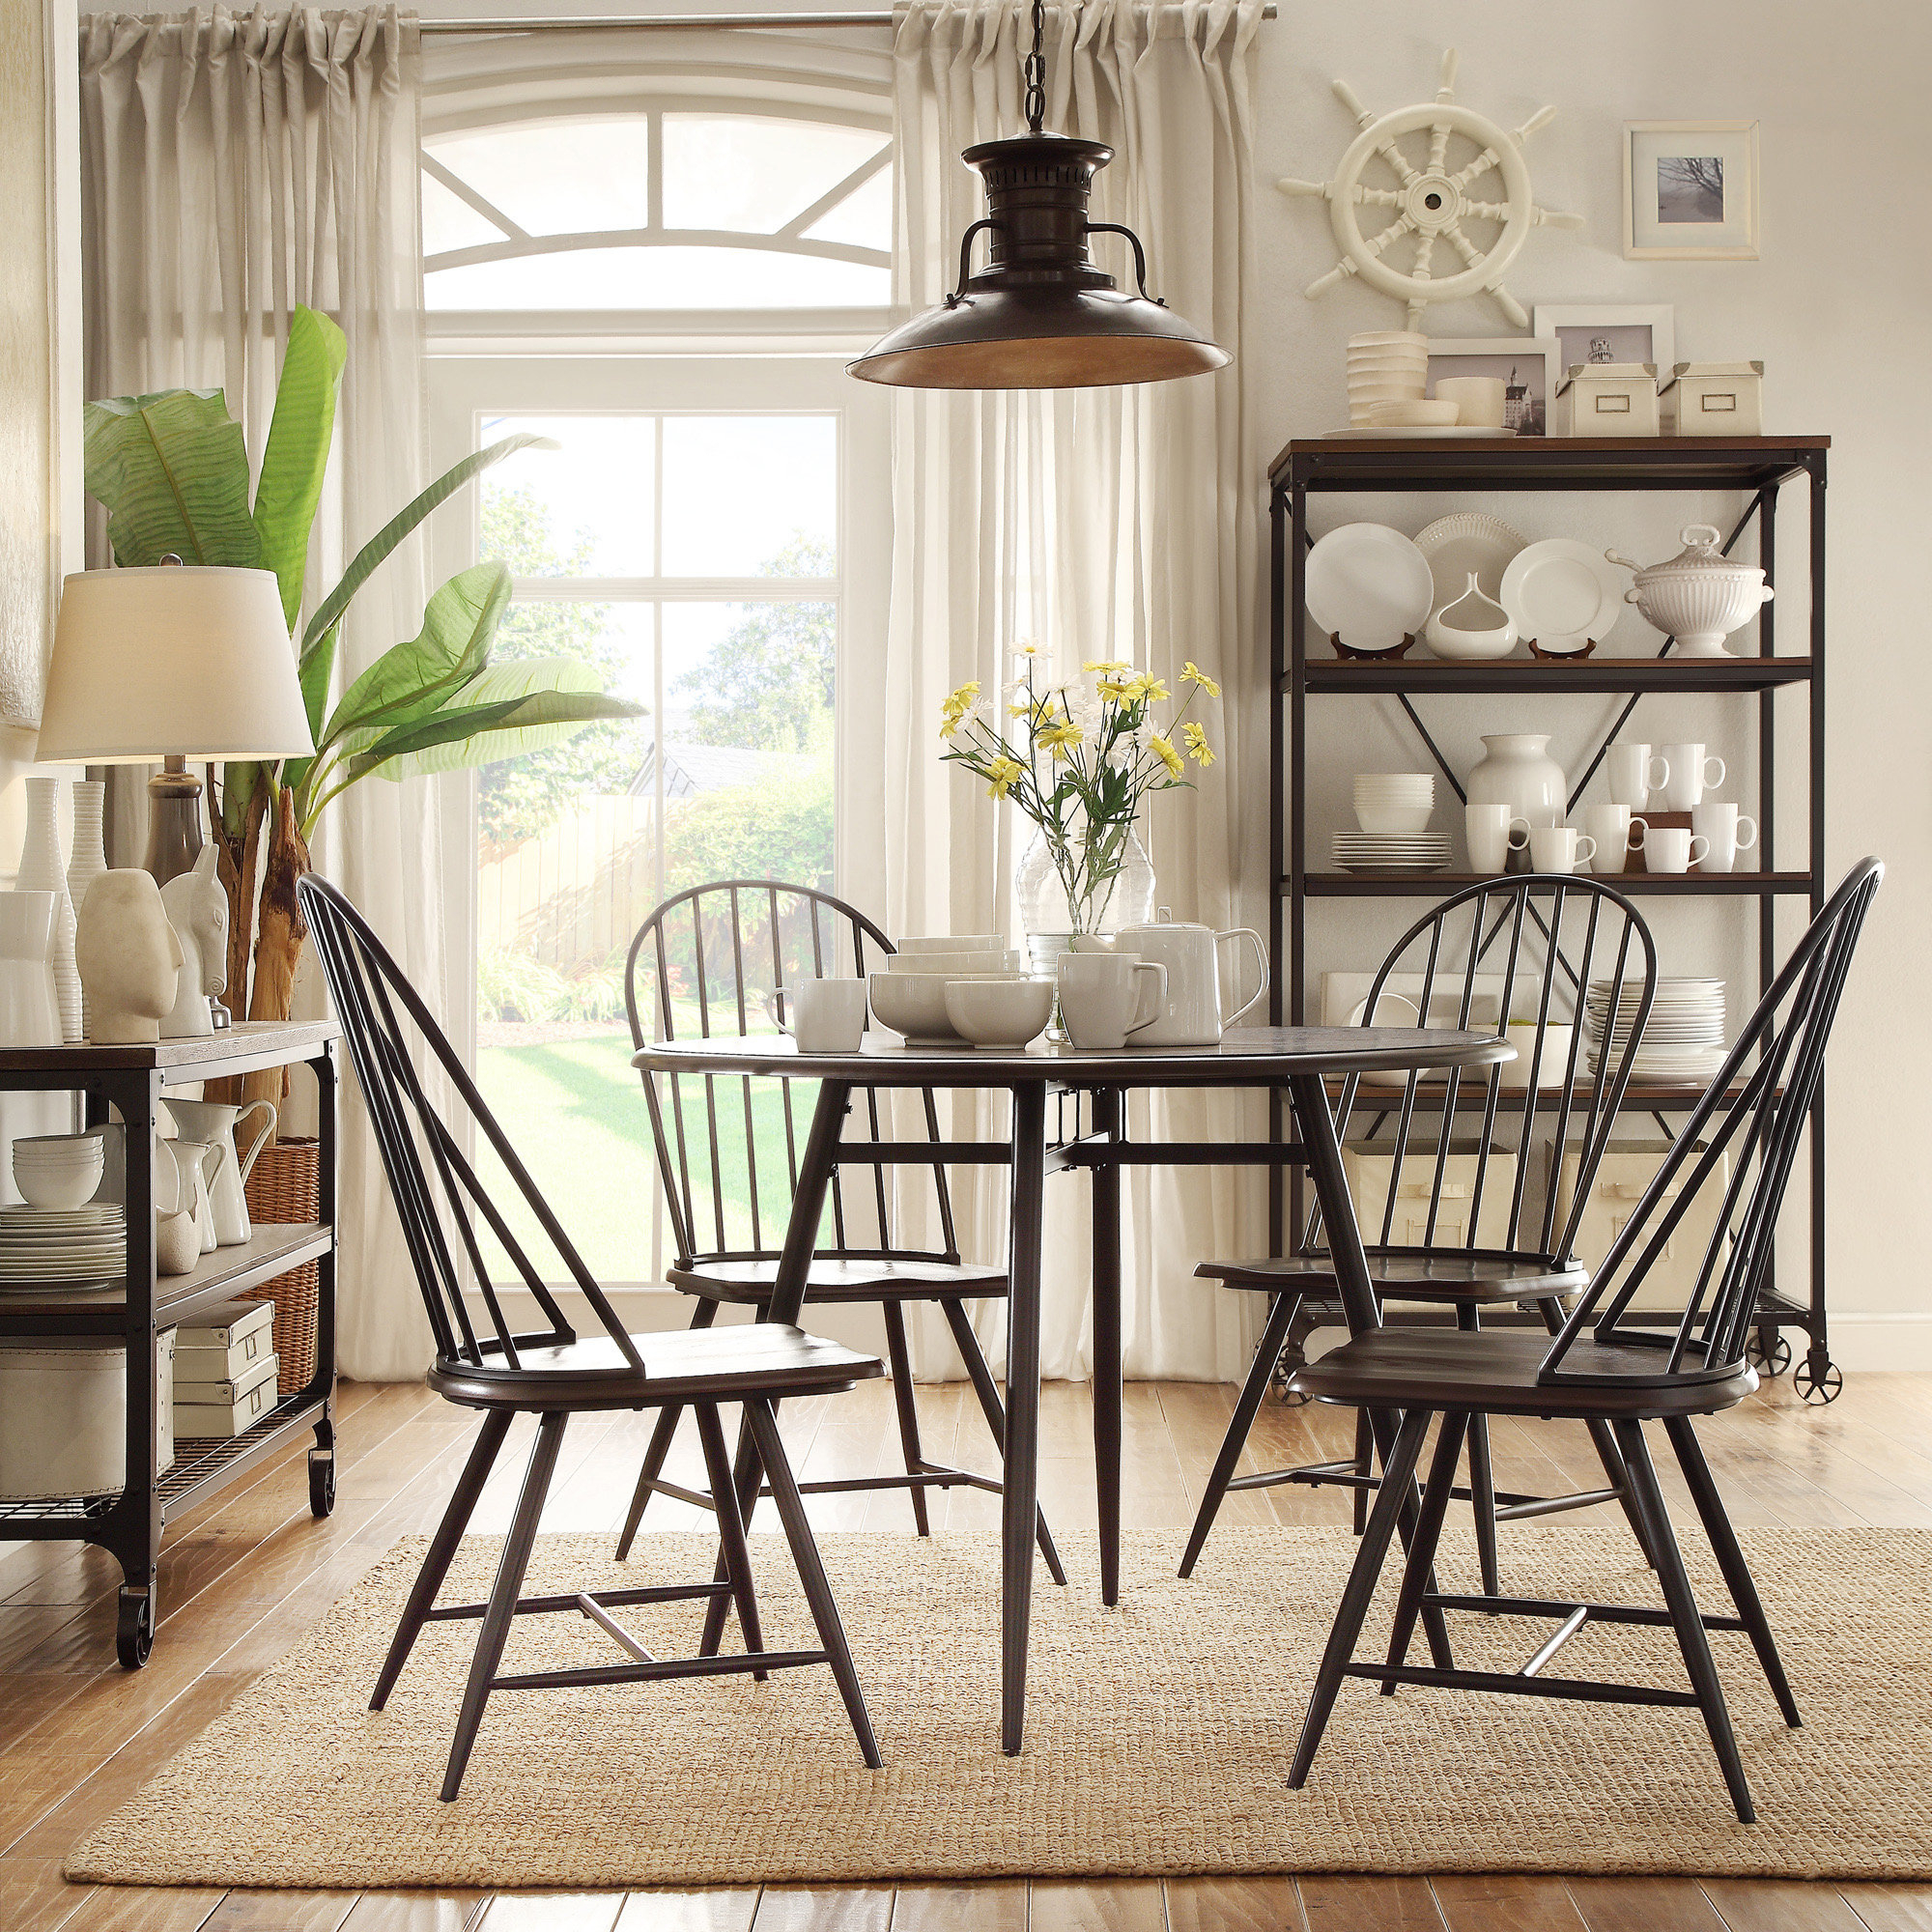 Hughley 5 Piece Dining Set Inside 2018 Bearden 3 Piece Dining Sets (View 13 of 20)